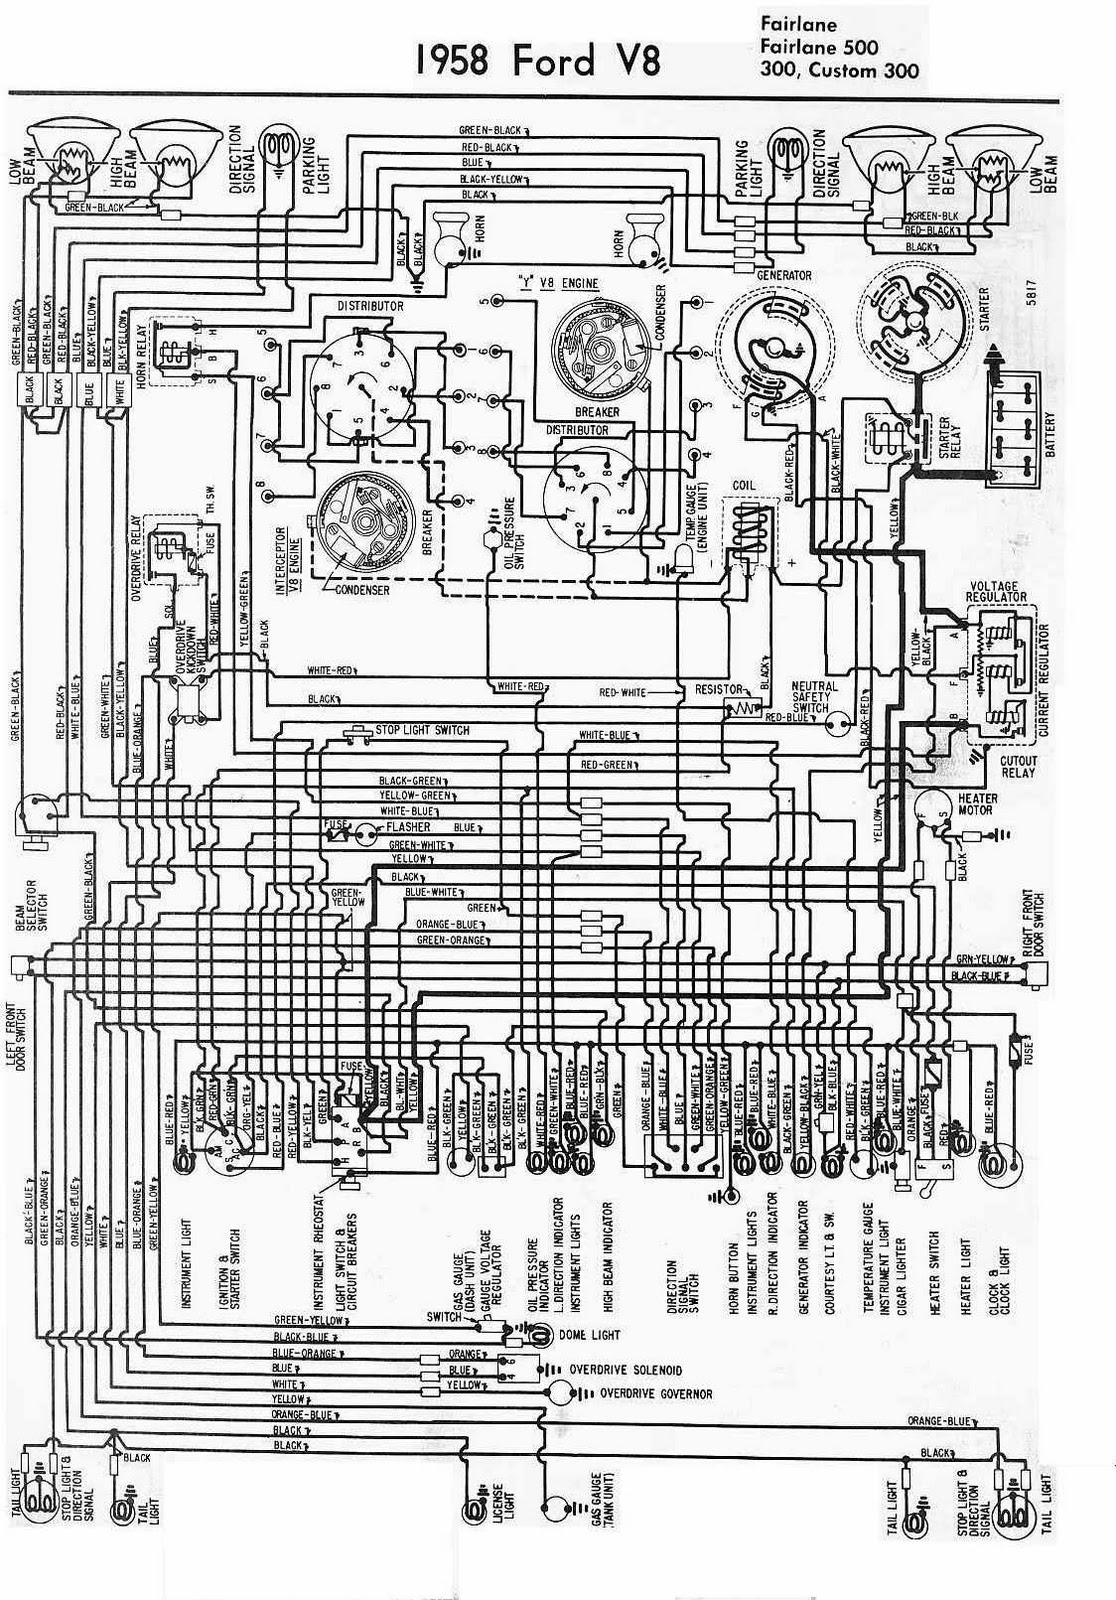 Electrical Bwiring Bdiagram Bfor B Bford Bv on 1957 Ford Fairlane Wiring Diagram